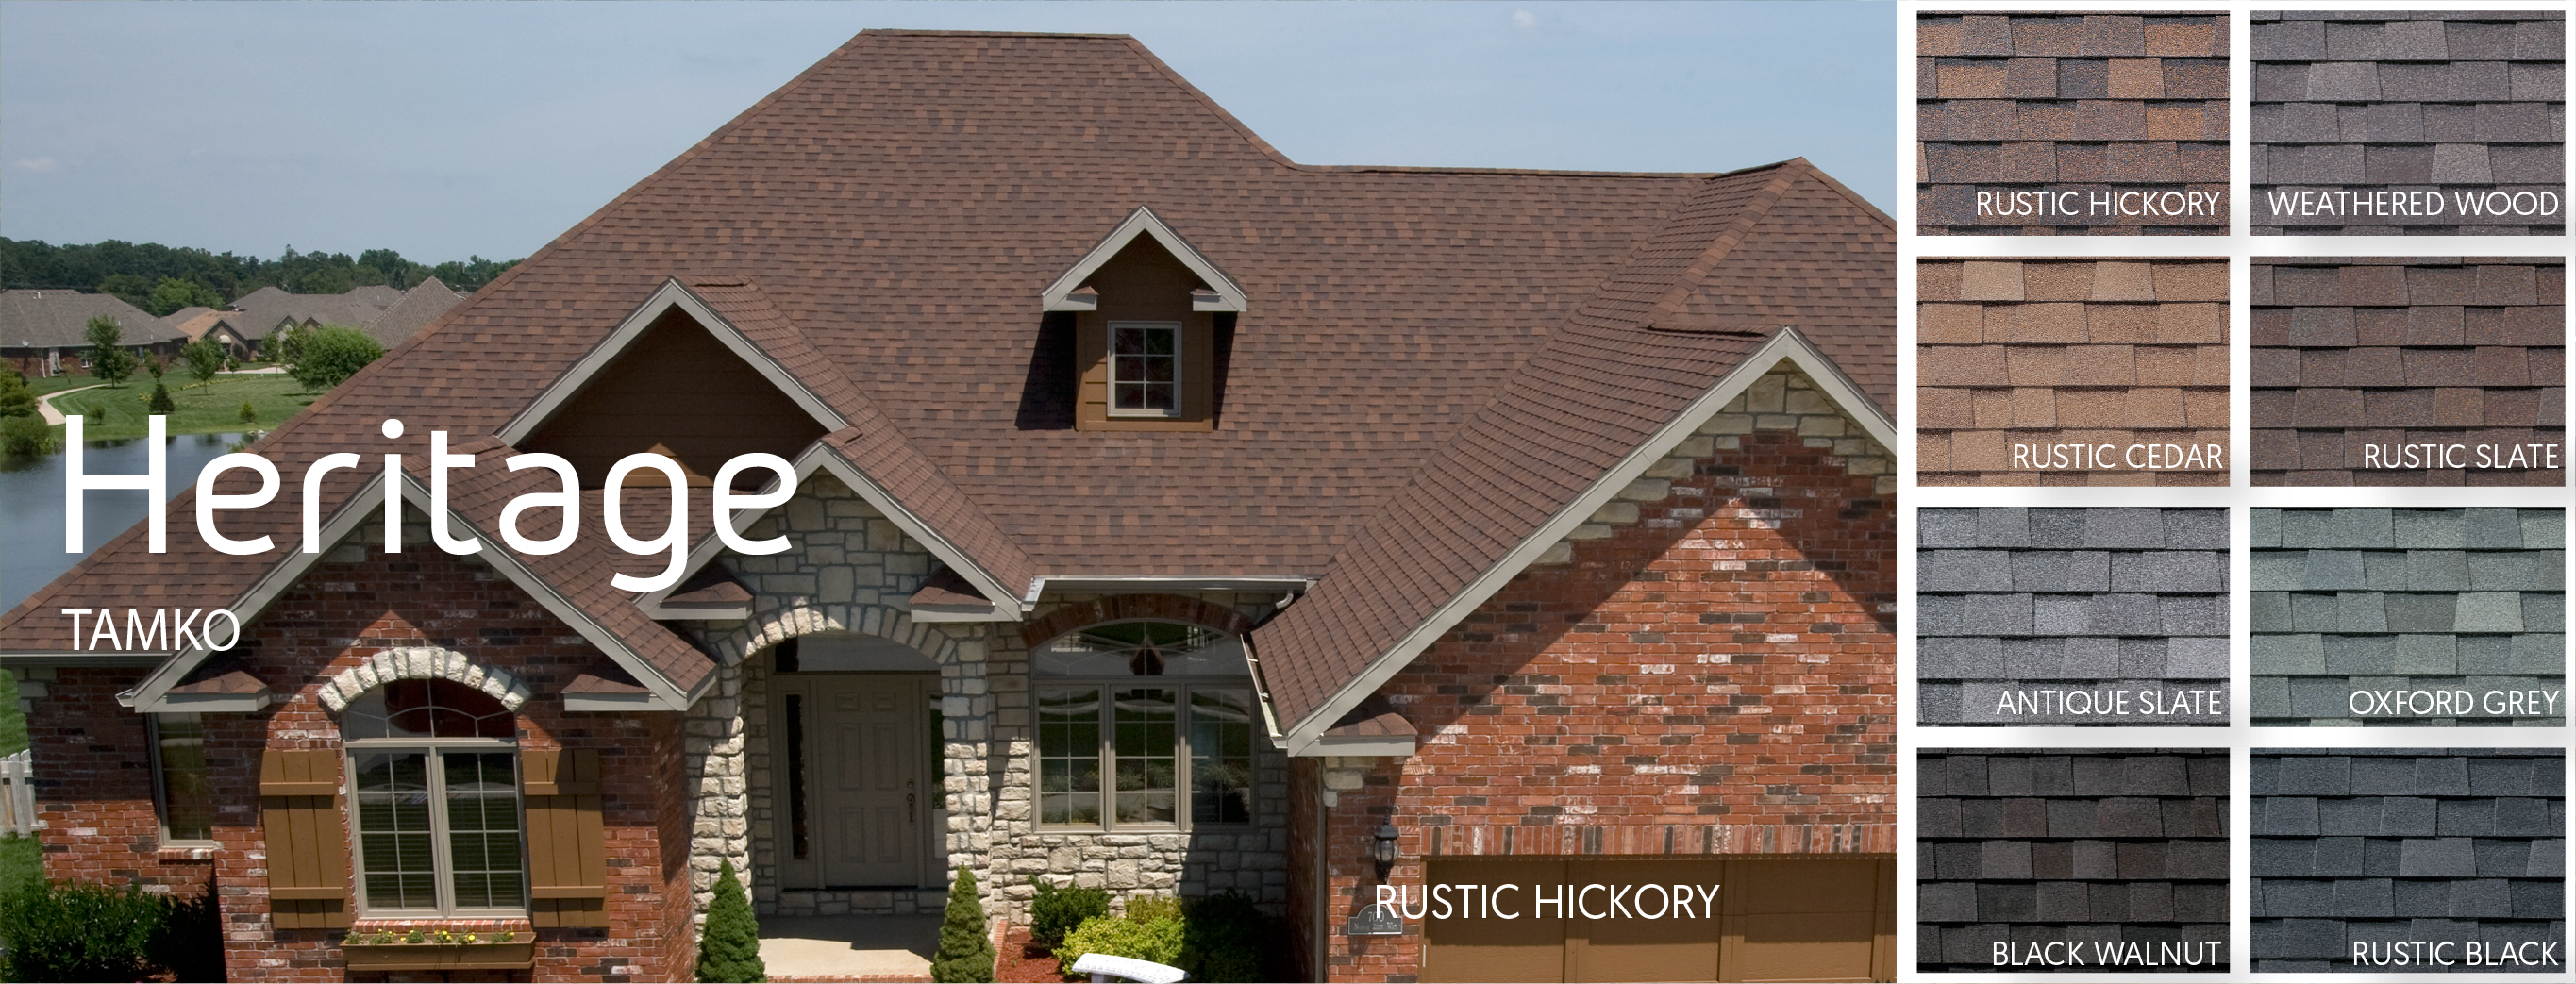 Beautiful Homes Start with Heritage Shingles: Heritage Shingles | Cedar Shingles Lowes | Siding Cedar Shingles